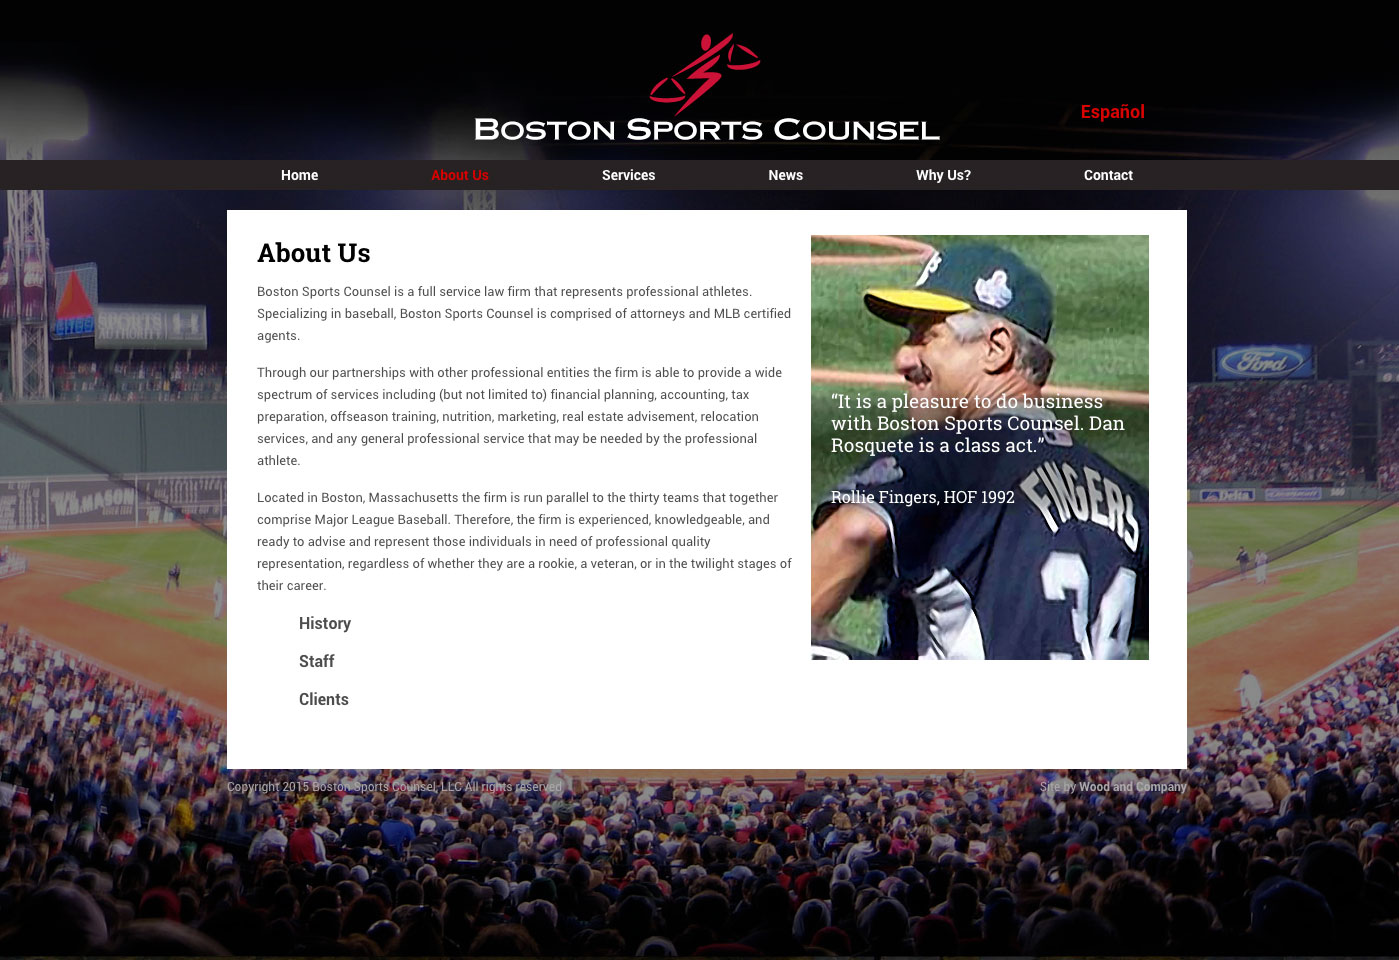 Boston Sports Counsel Website About Page